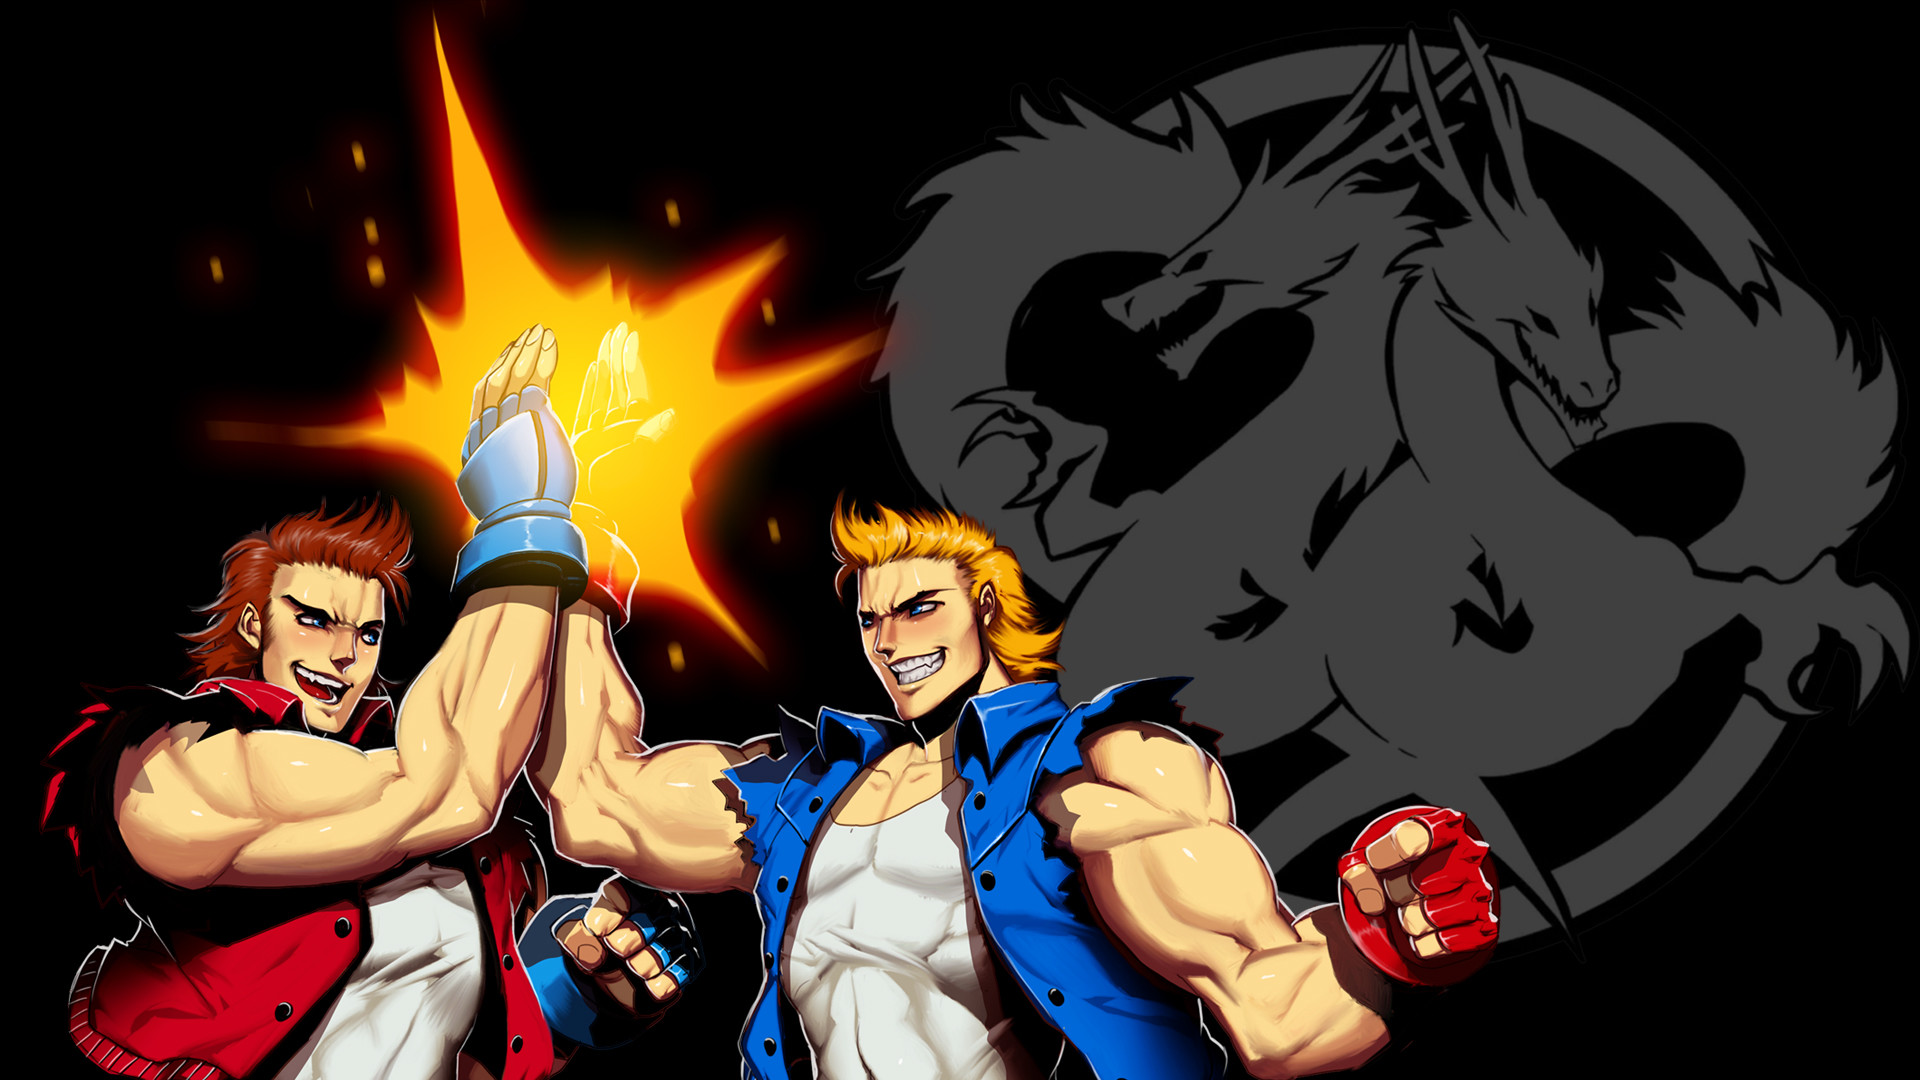 Res: 1920x1080, wallpaper #4 Wallpaper from Double Dragon: Neon